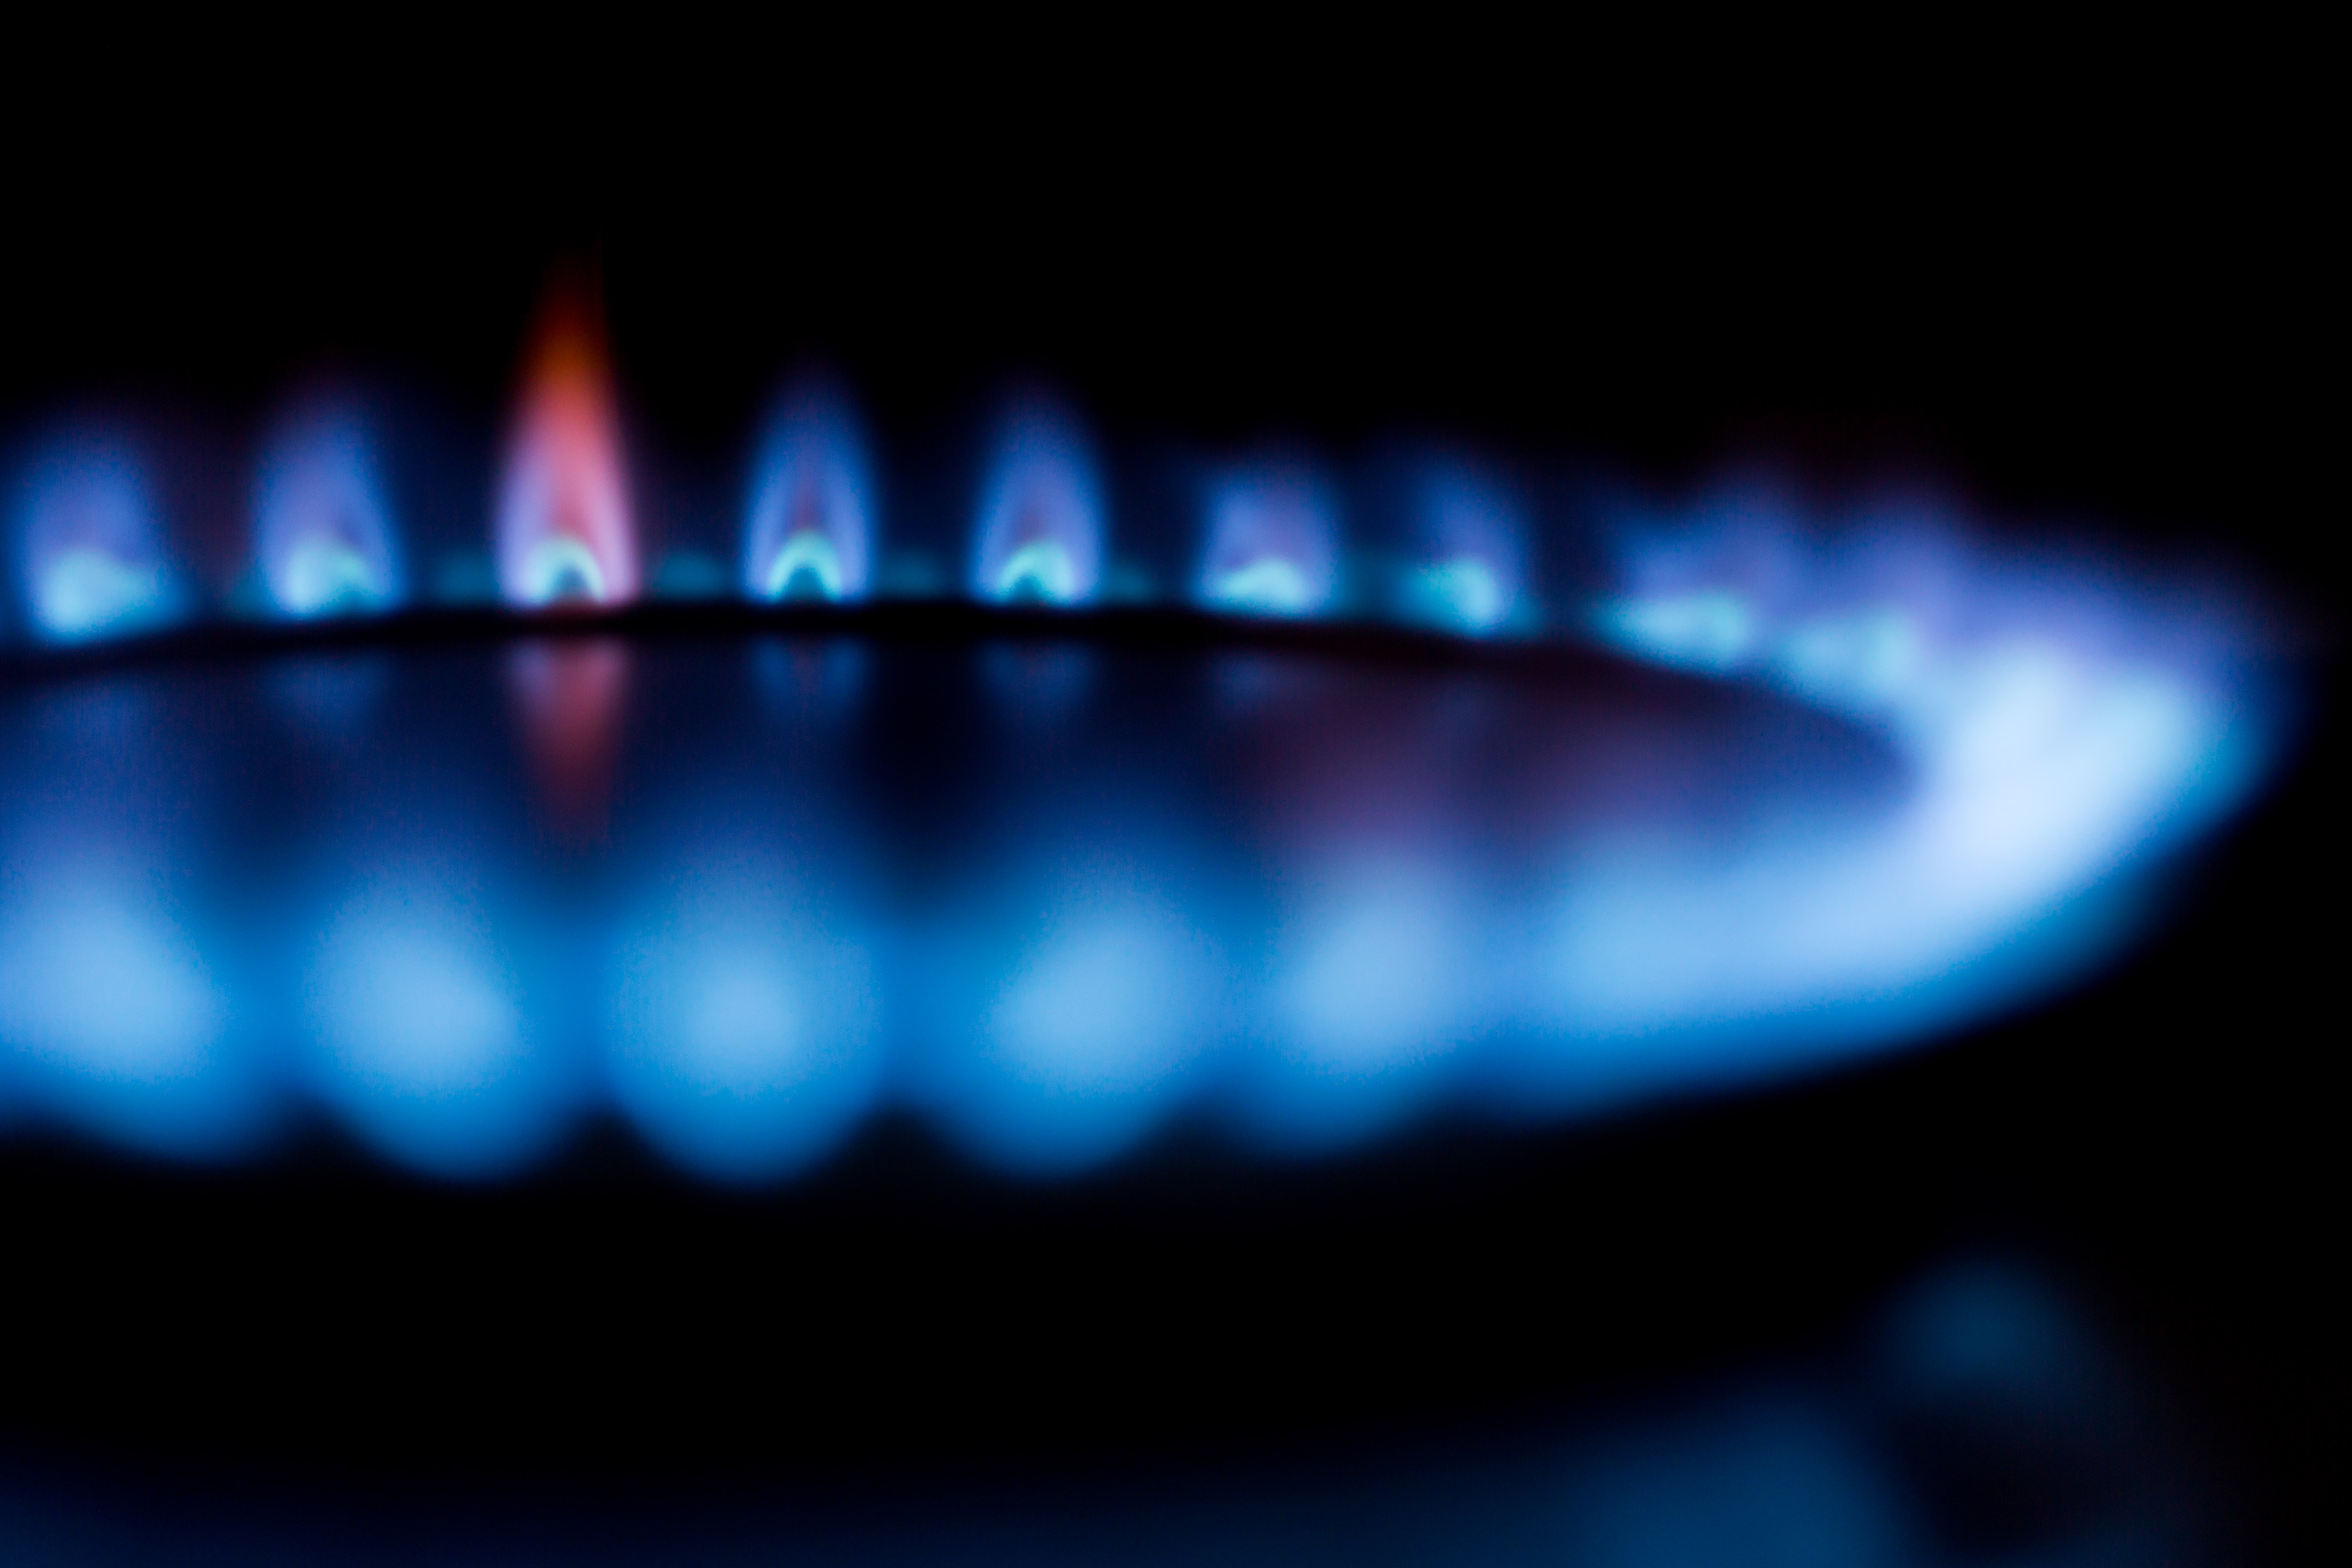 San Jose To Become Largest City to Ban Natural Gas for New Construction